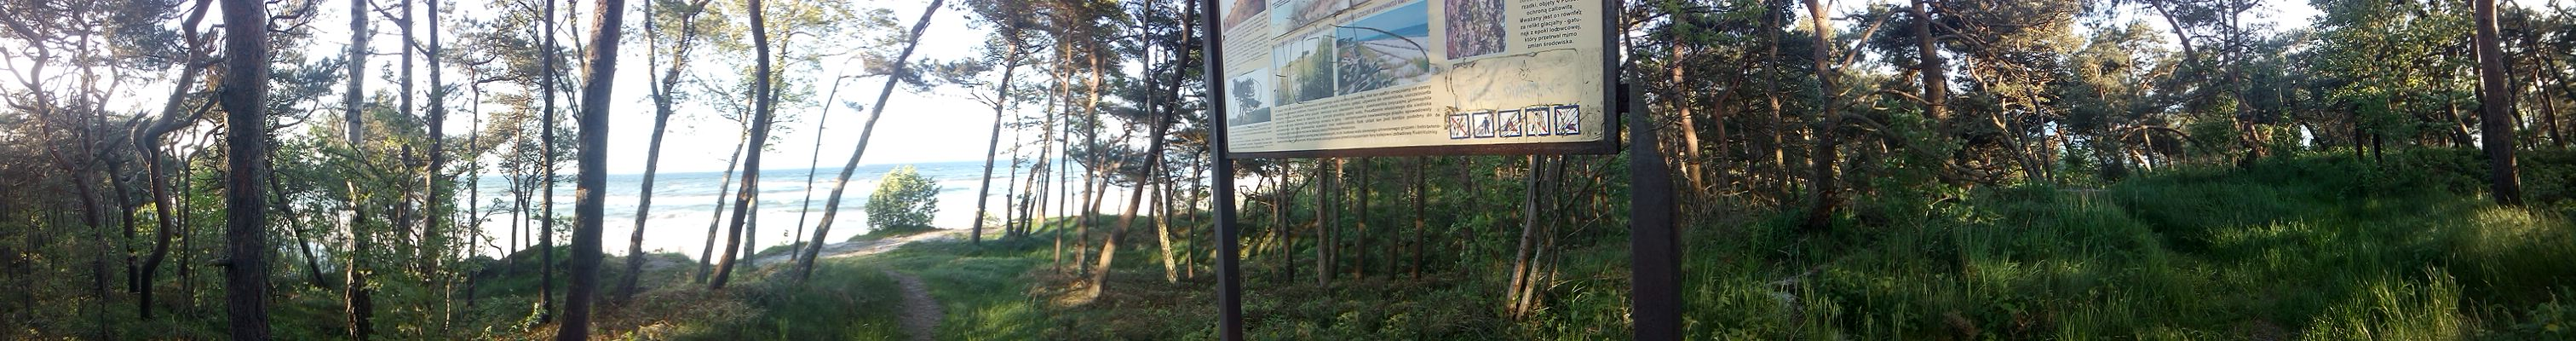 Panorama with trees, sea, grass and a sign in the middle